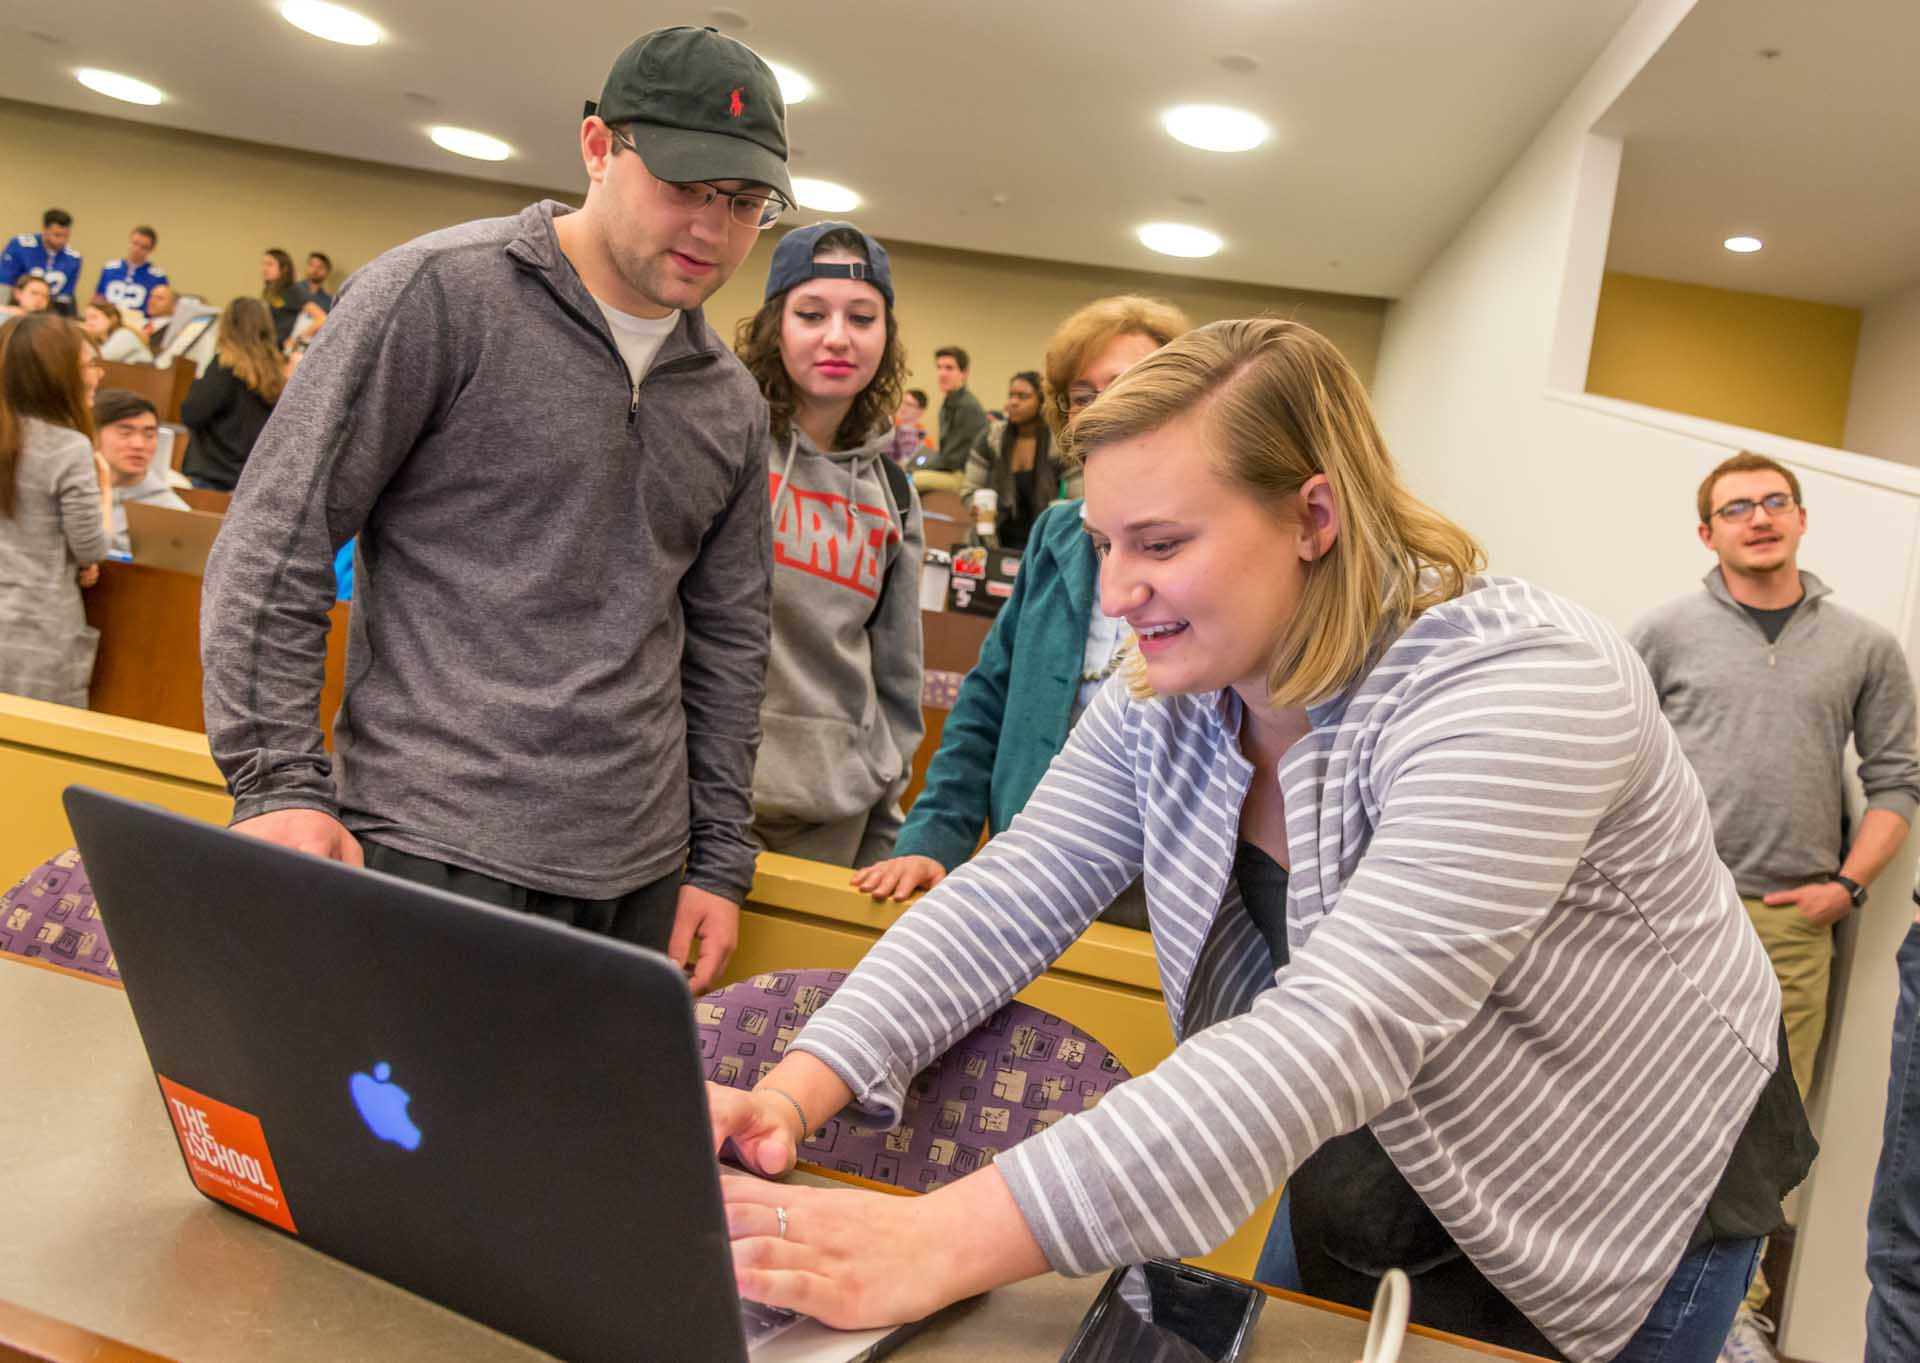 Students being helped at computer in Whitman